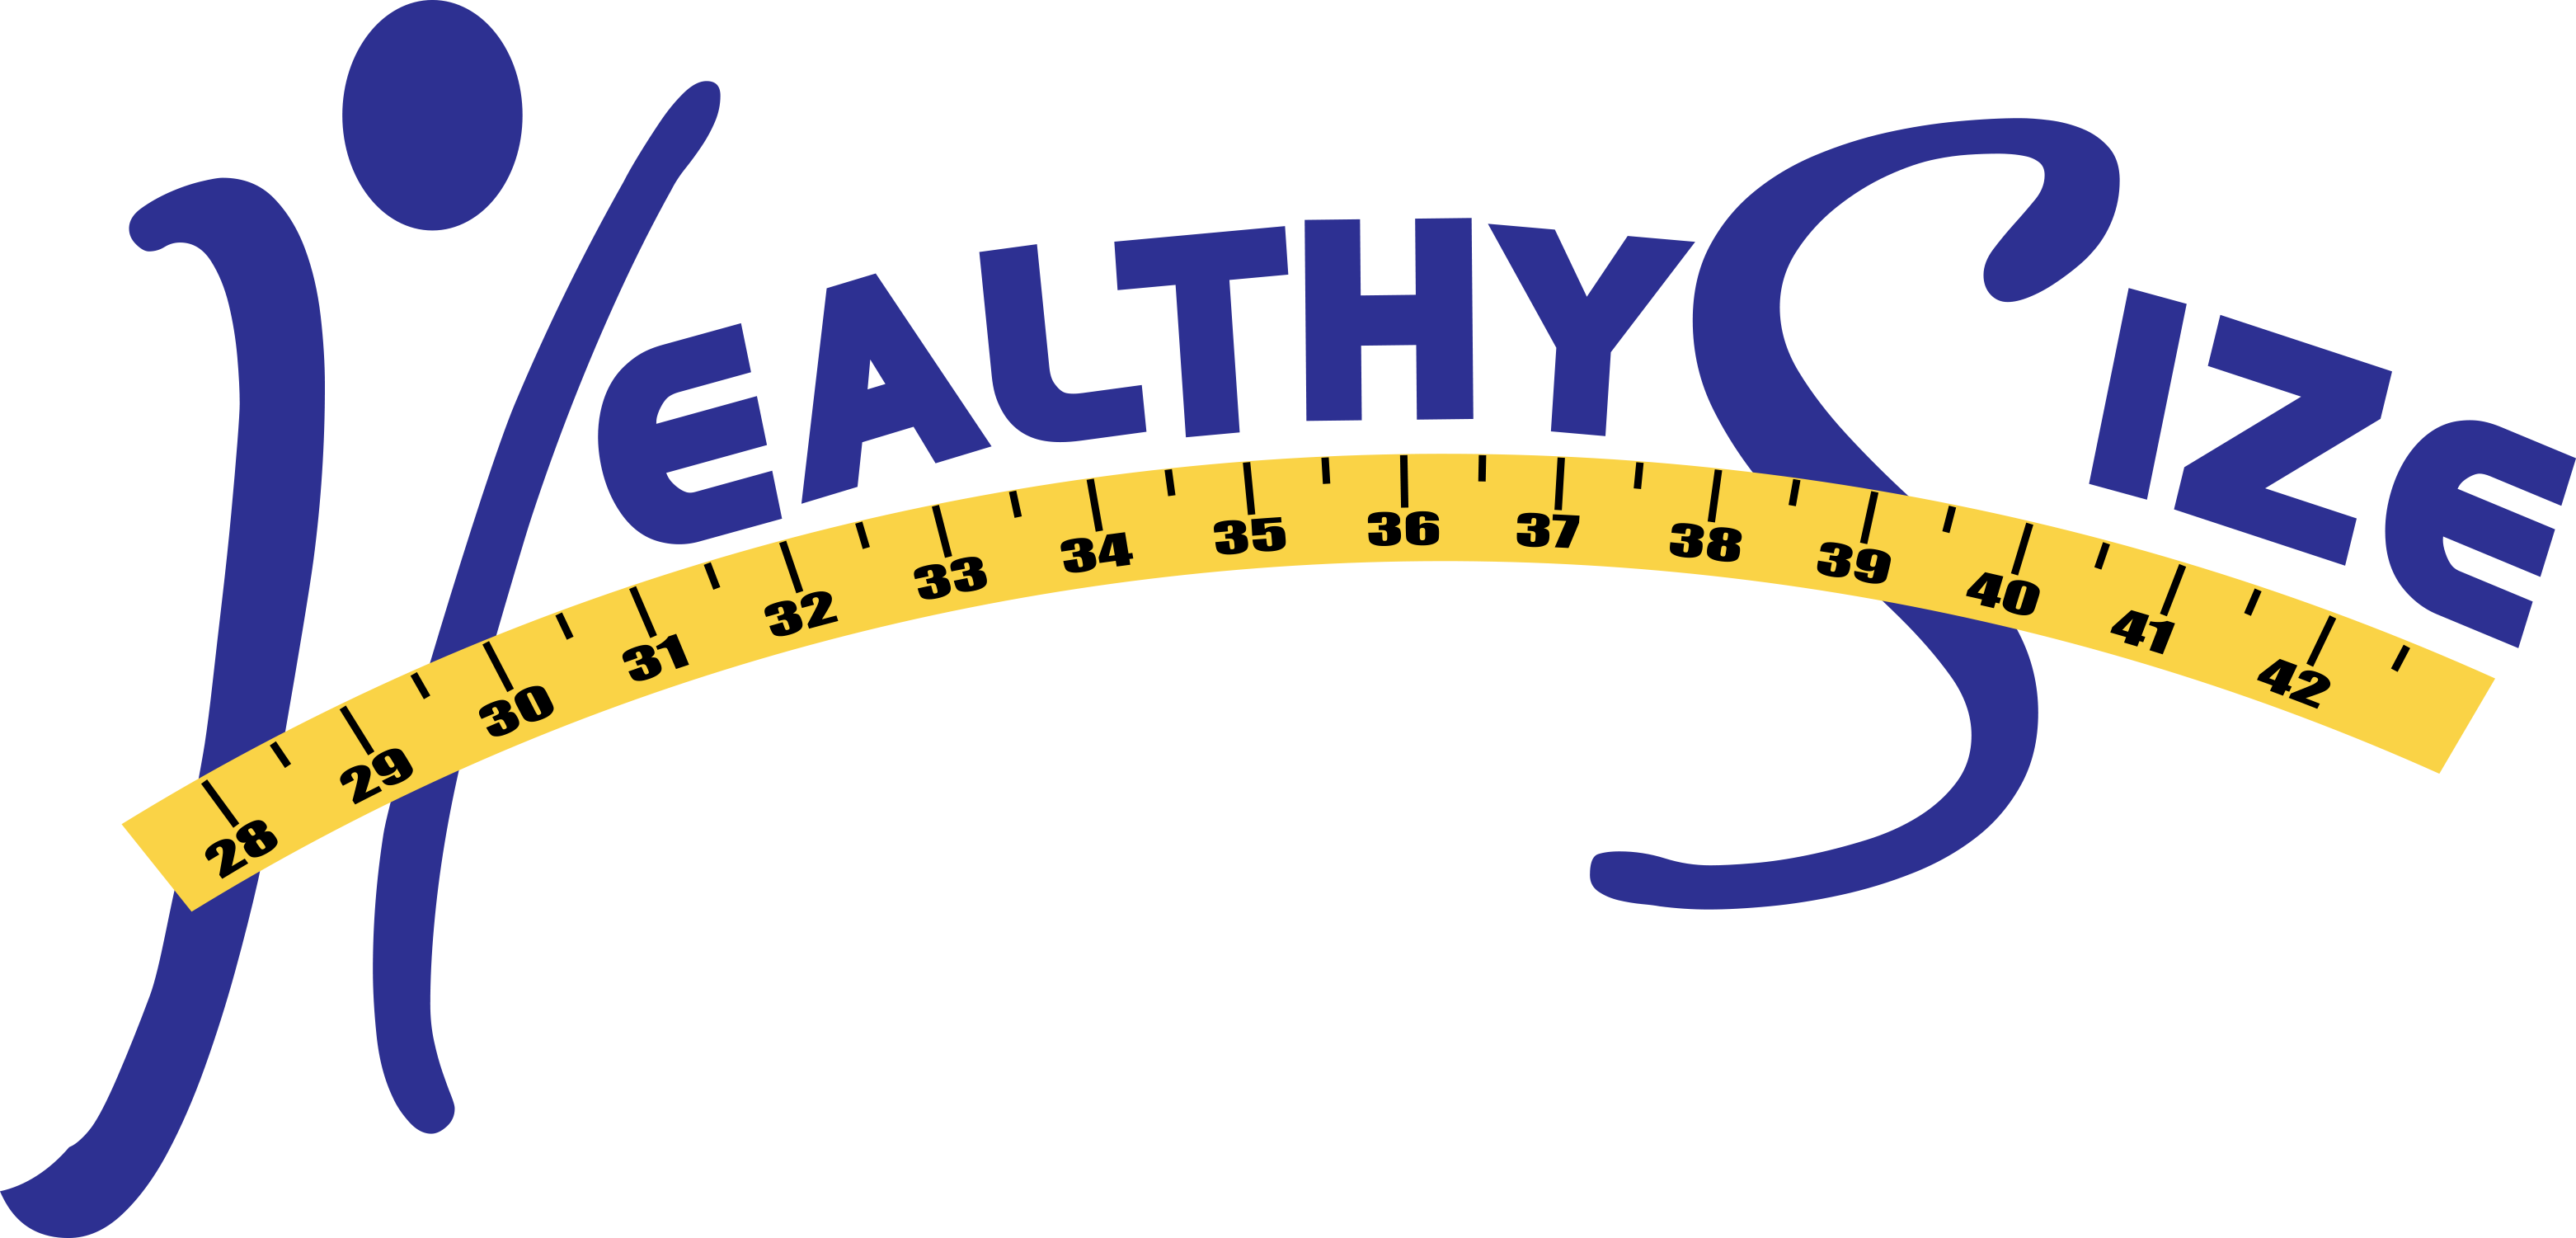 Healthy Size | Medical Weight Loss Clinic | Lake Charles, La